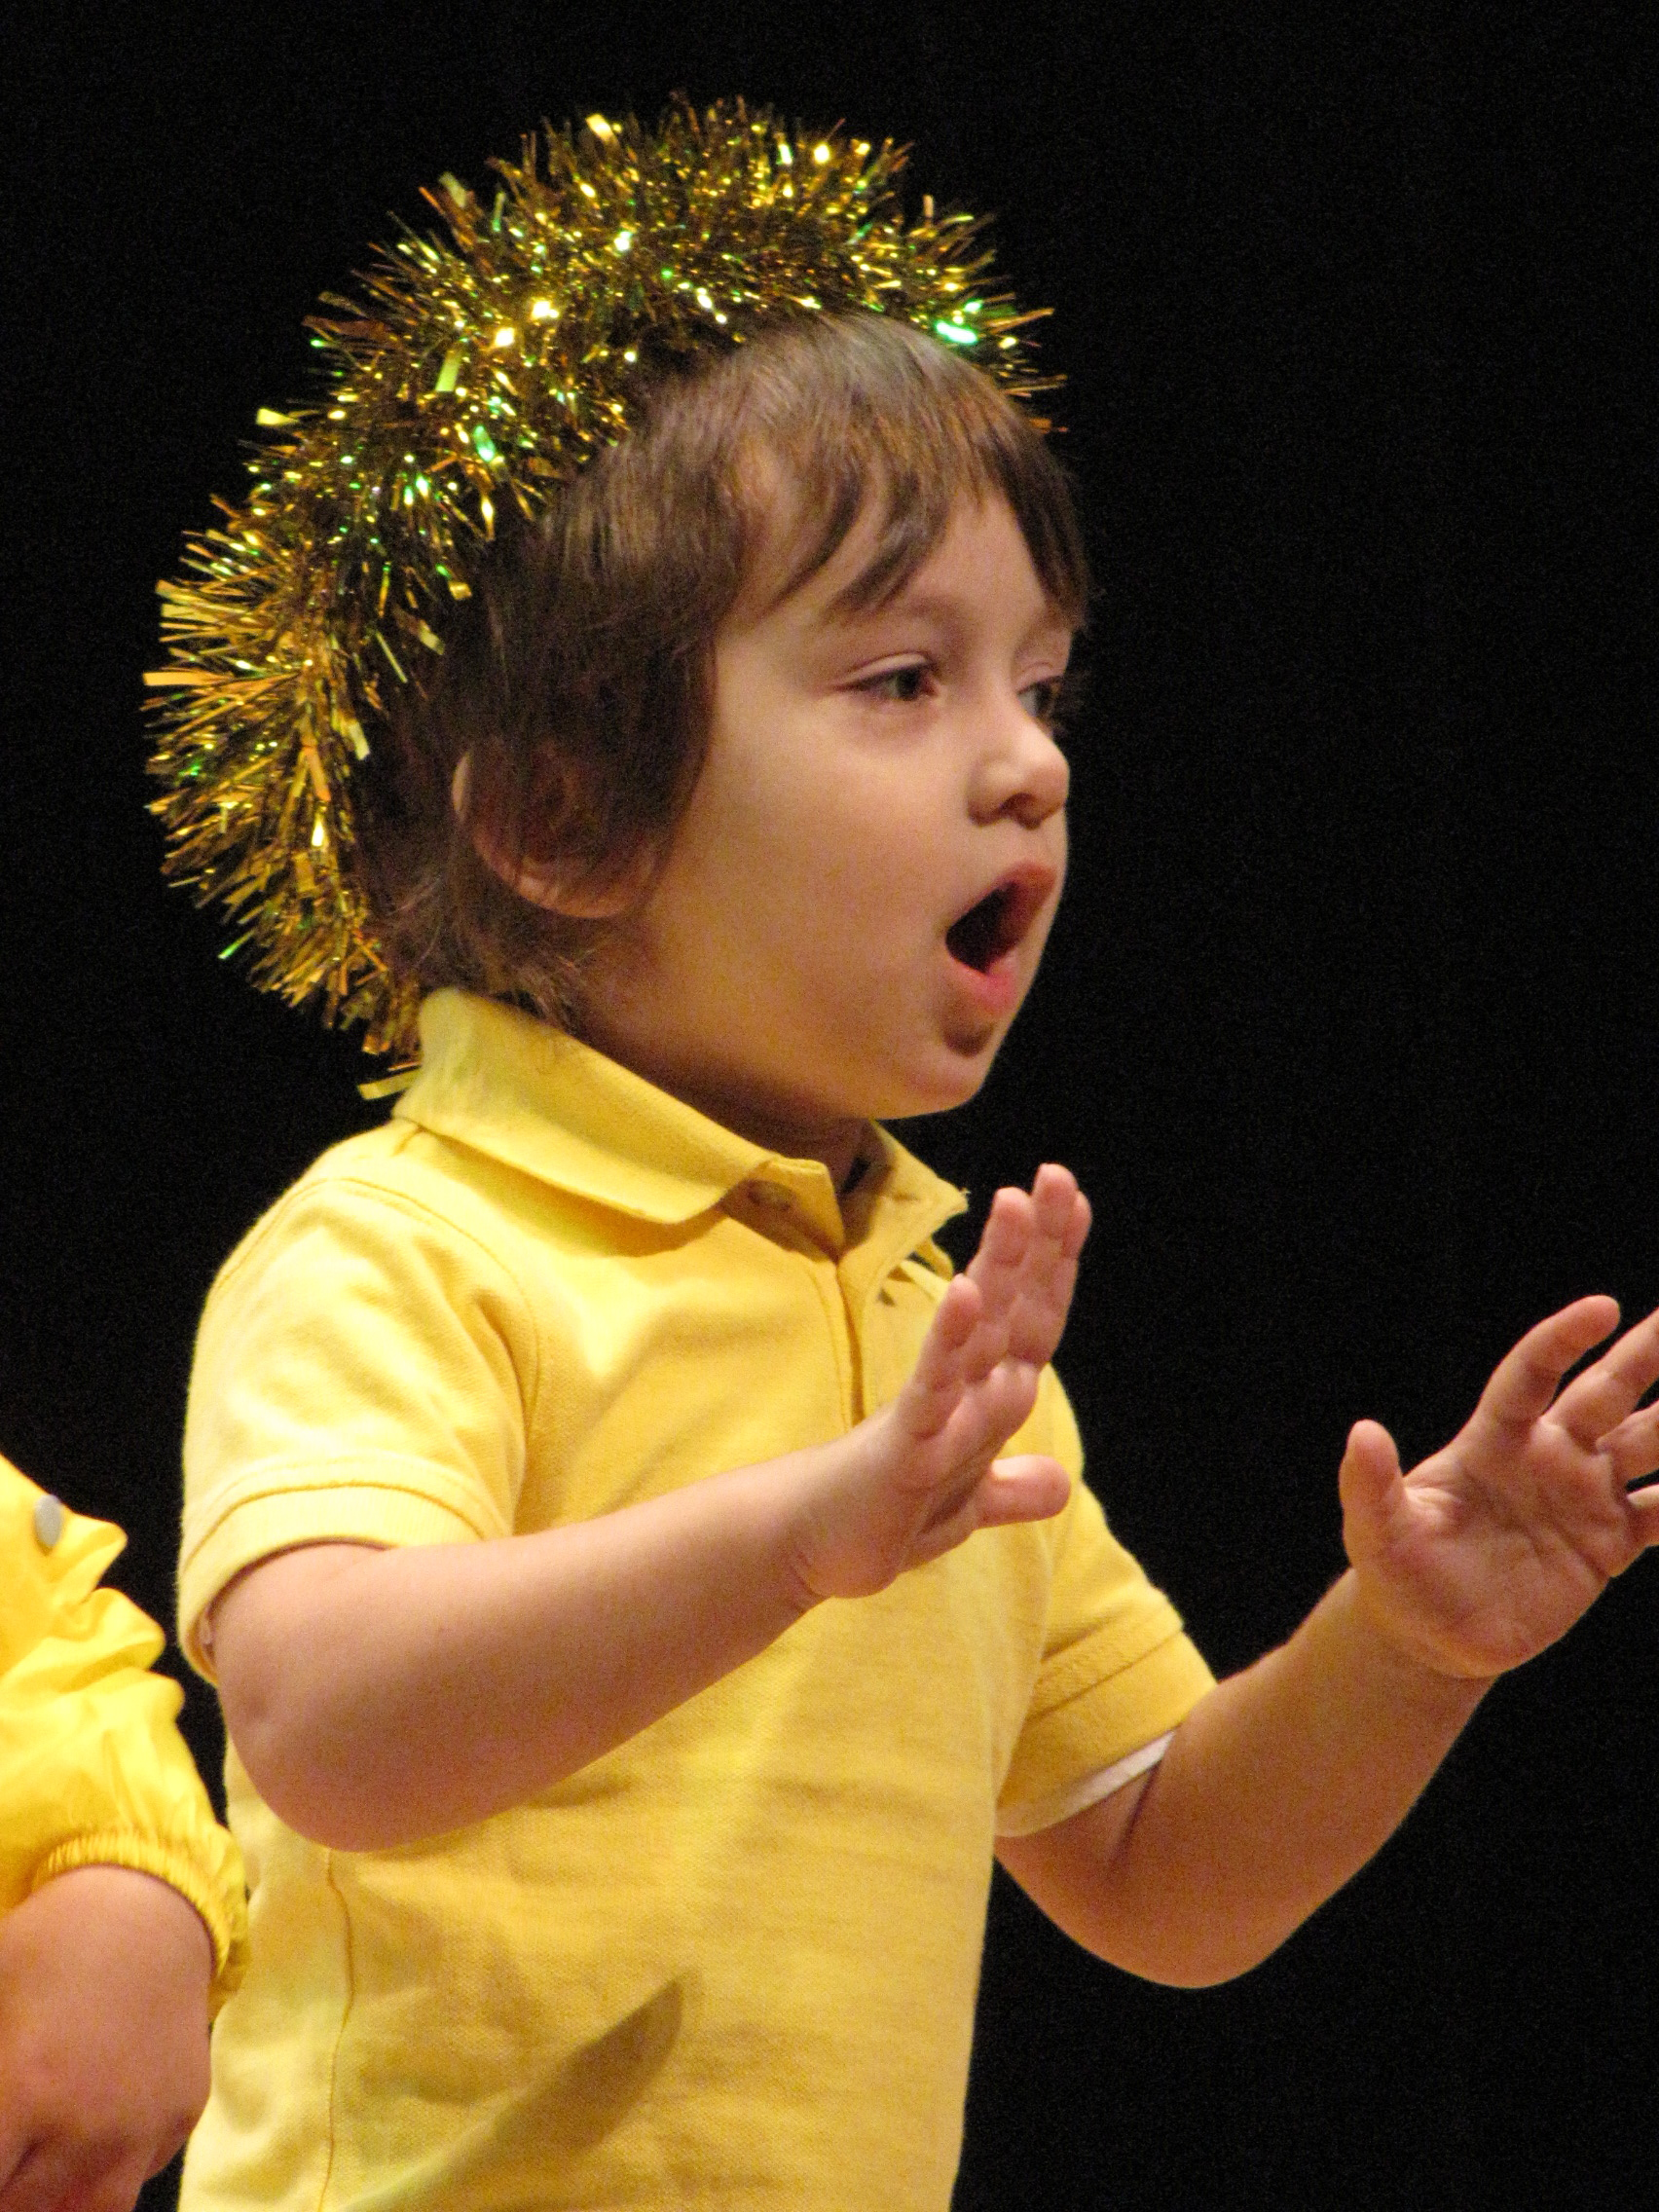 """Charles singing """"Twinkle, Twinkle Little Star"""" at a Christmas concert at the age of 2.5."""